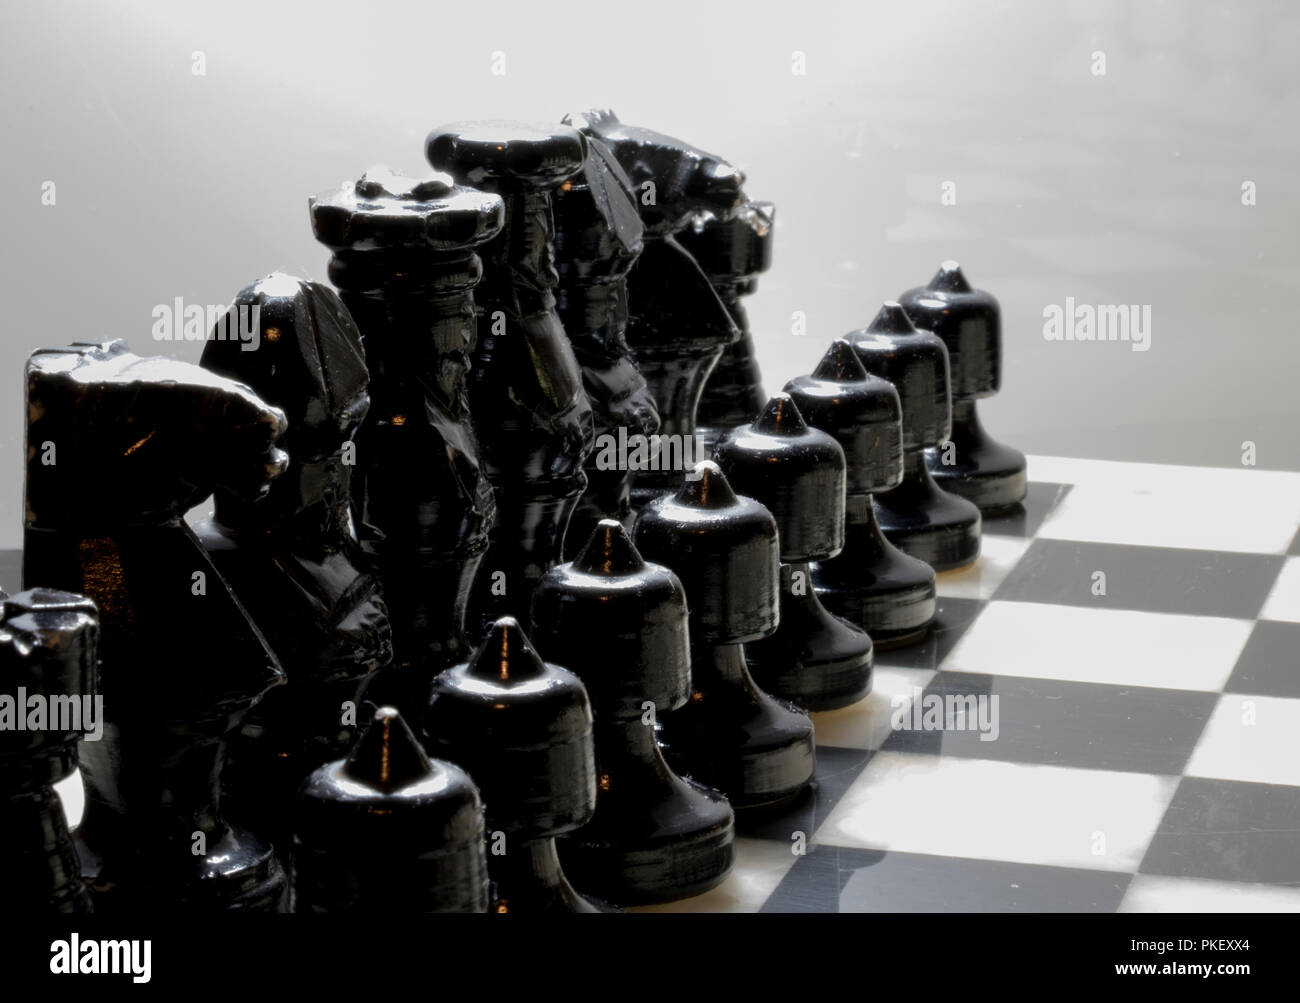 Black chess pieces lined up on a marble chess board. - Stock Image